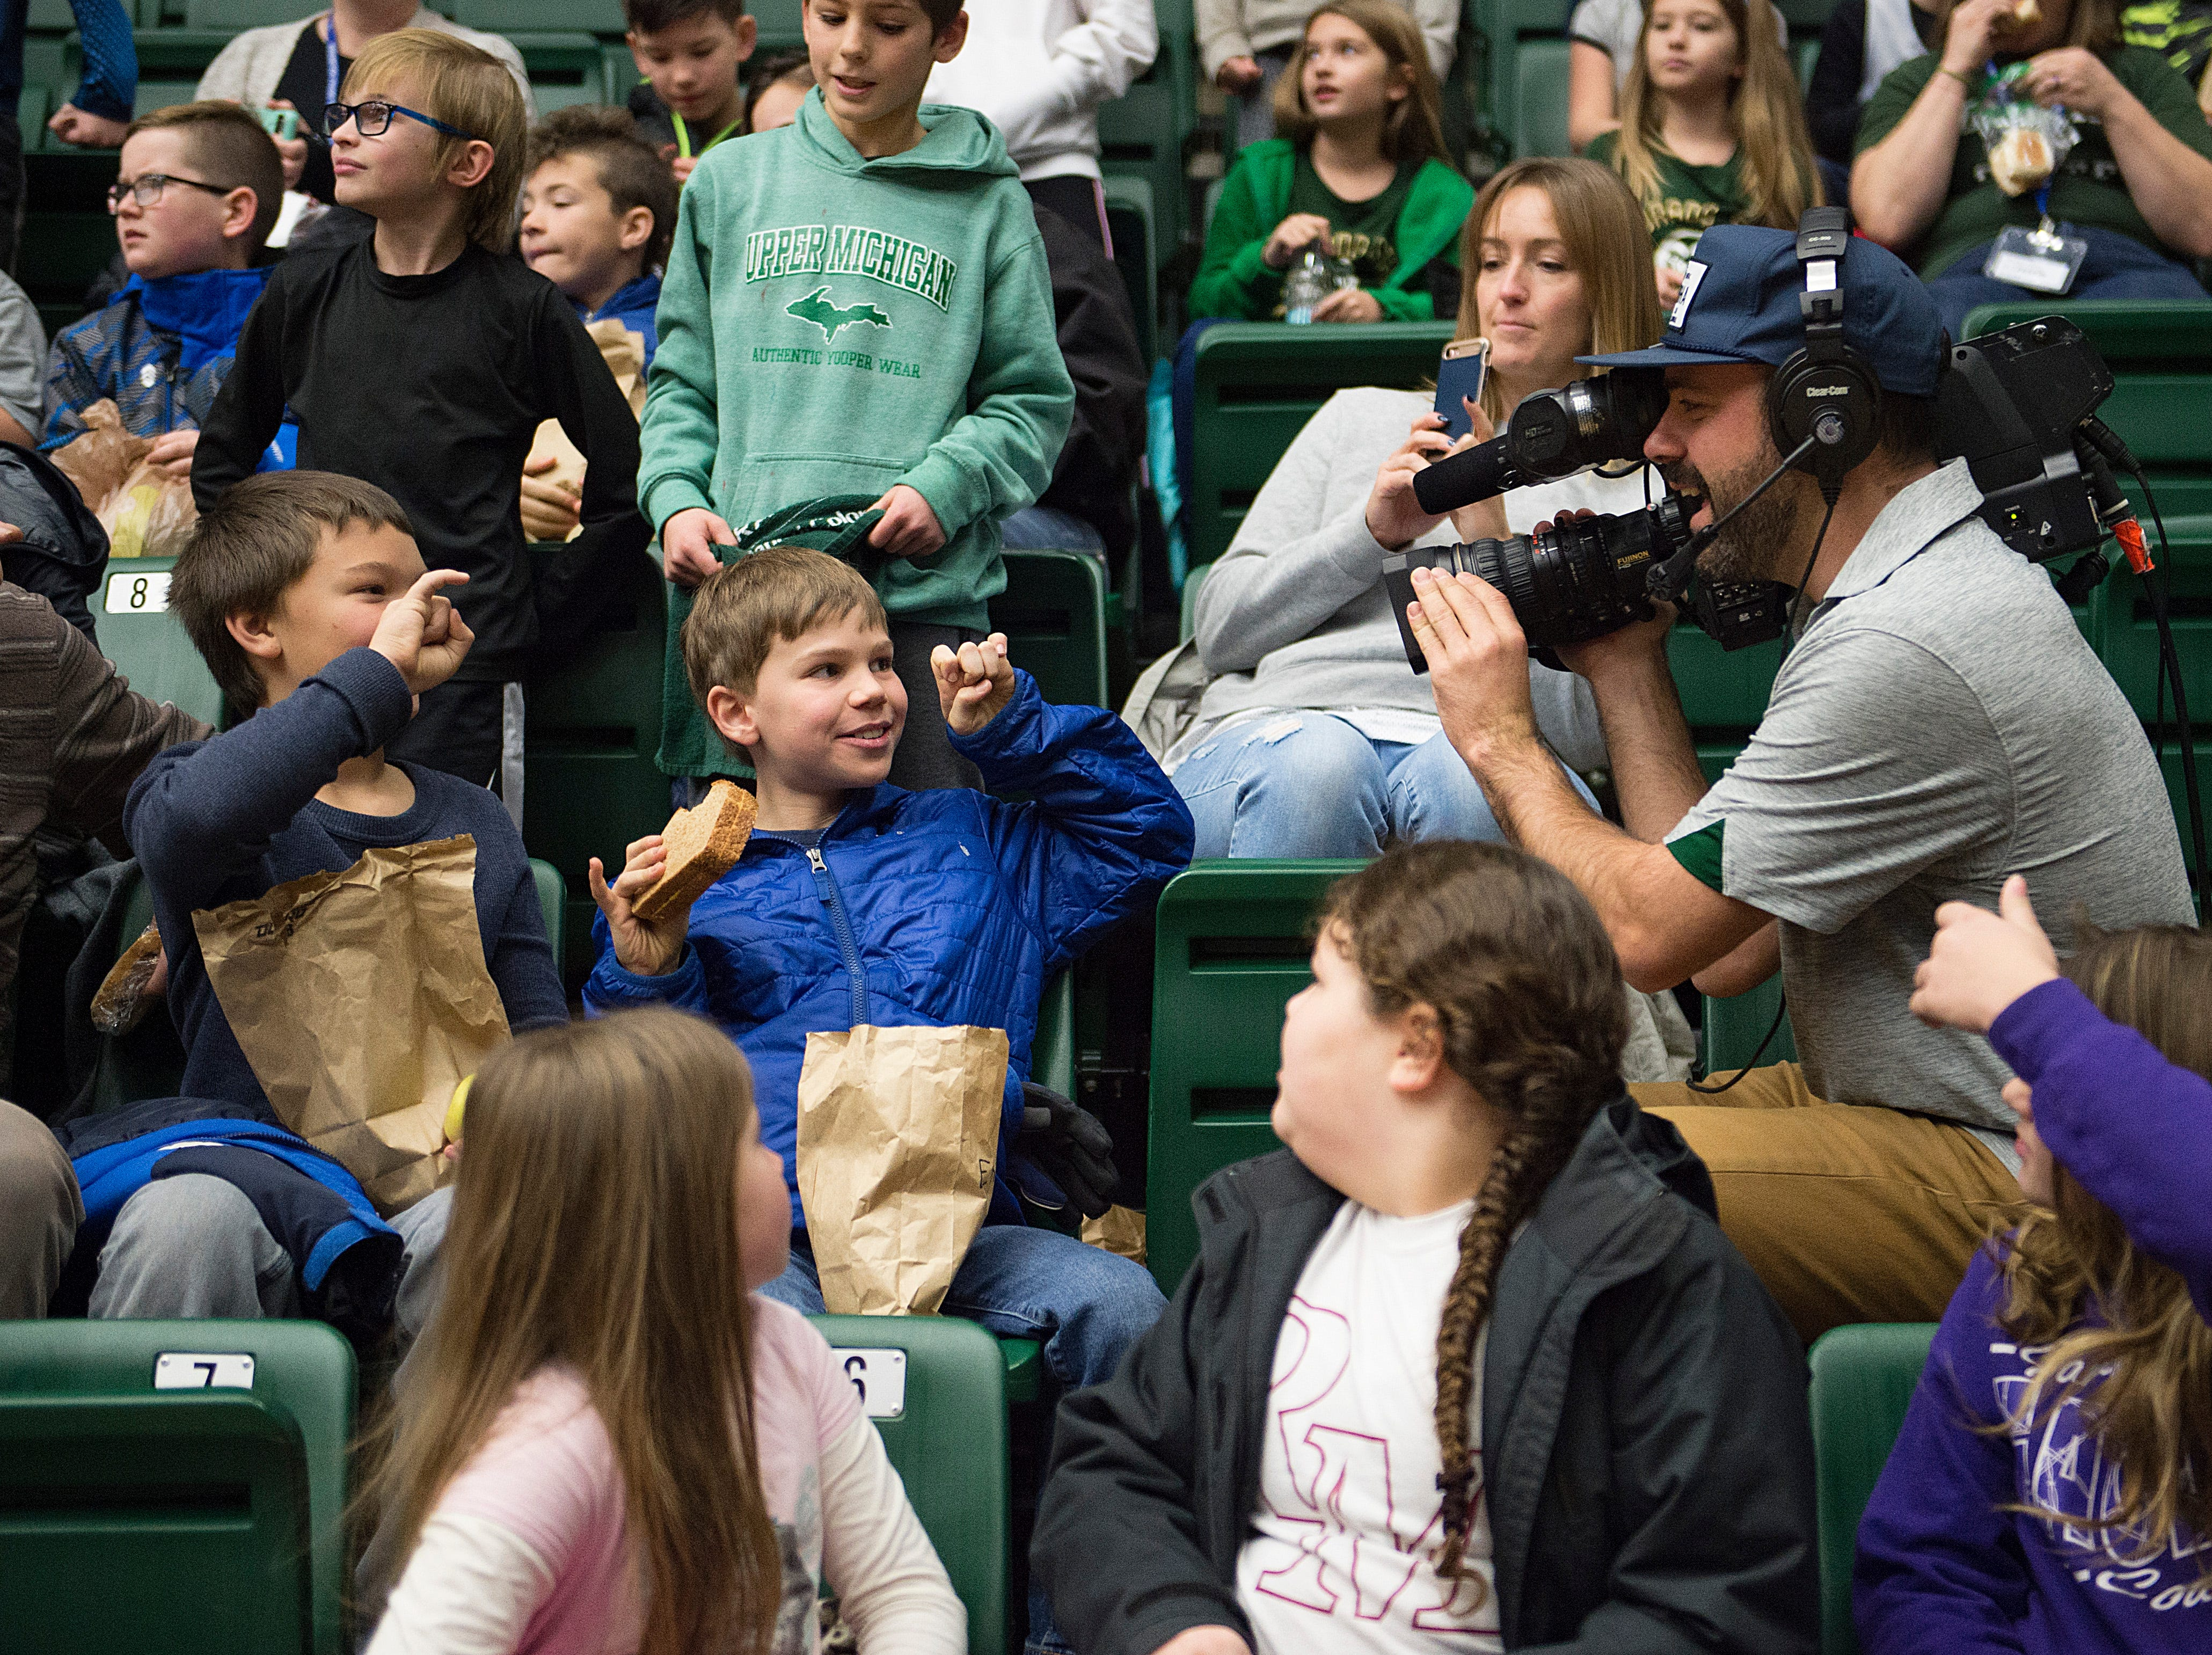 Poudre School District students get some camera time during a CSU women's basketball game against Northern Arizona at Moby Arena on Wednesday, December 5, 2018.